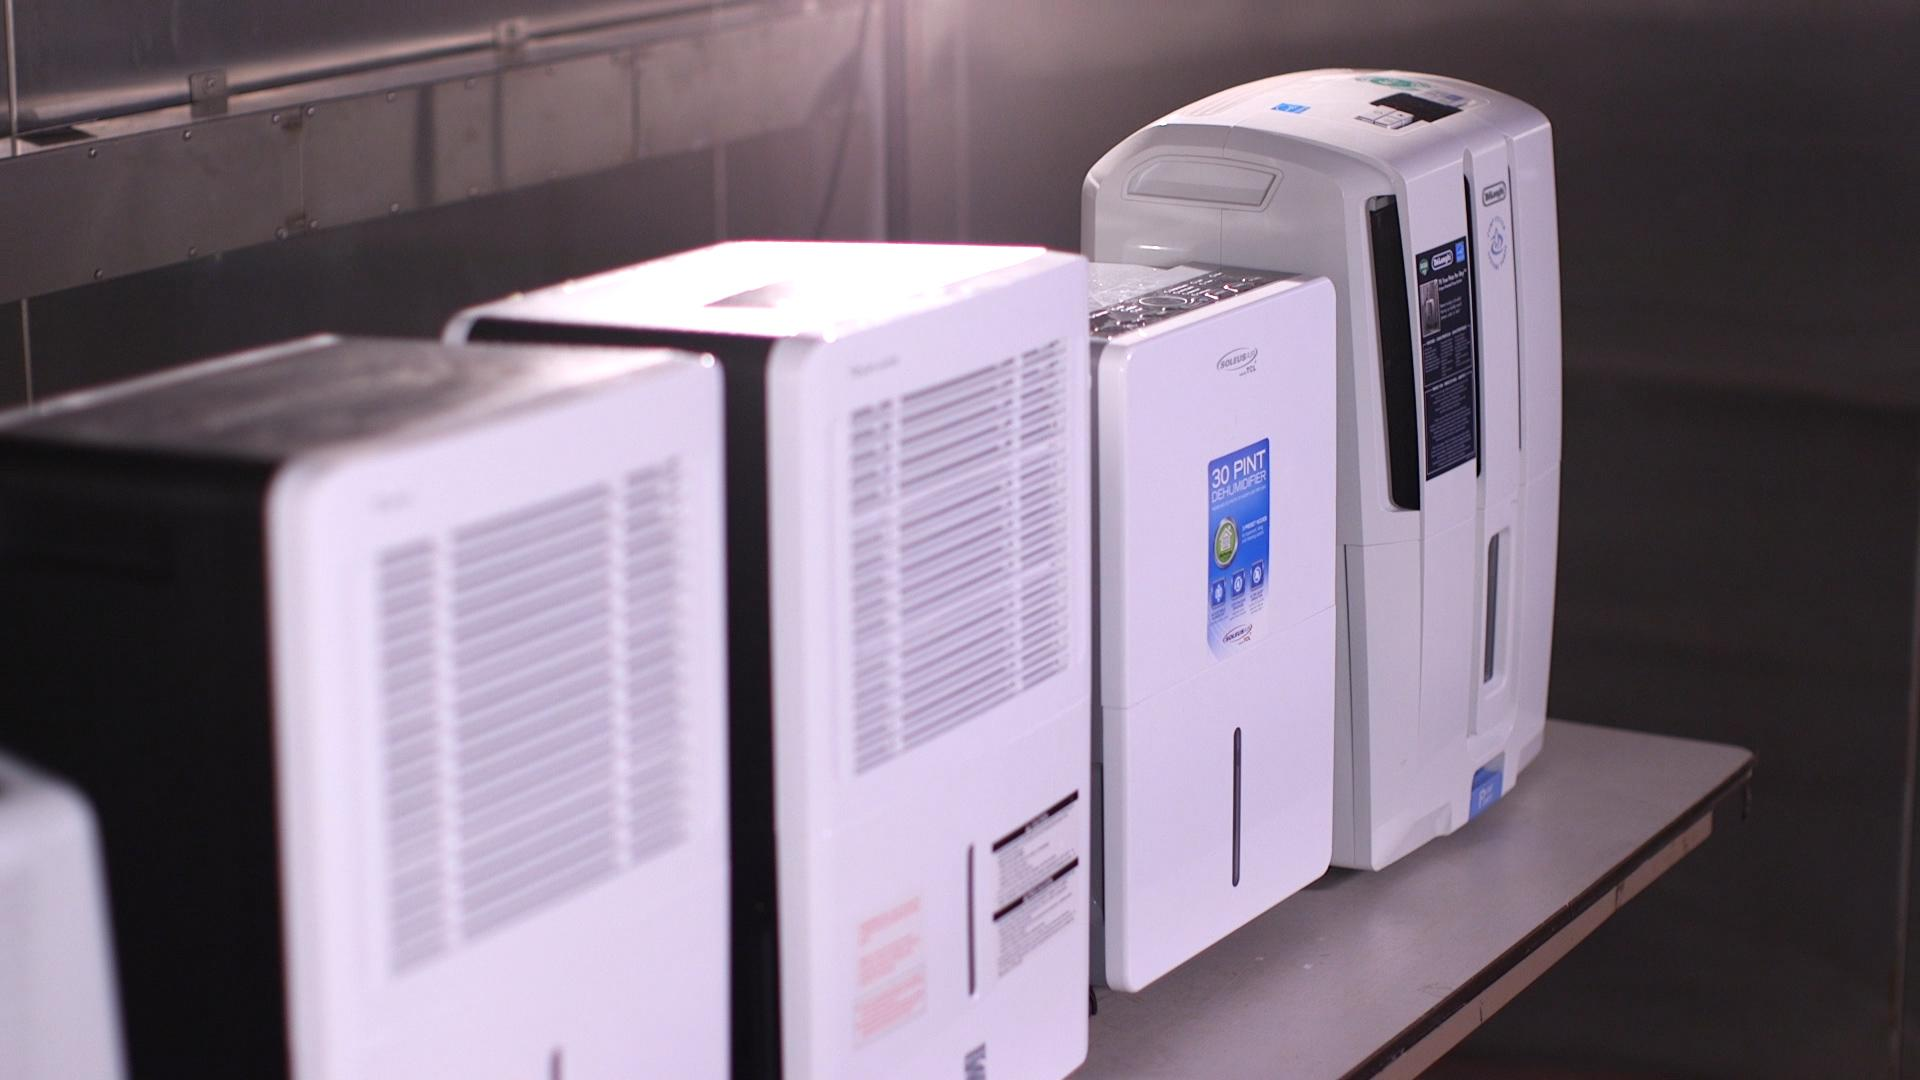 Danby Dehumidifier At Walmart best dehumidifier buying guide - consumer reports